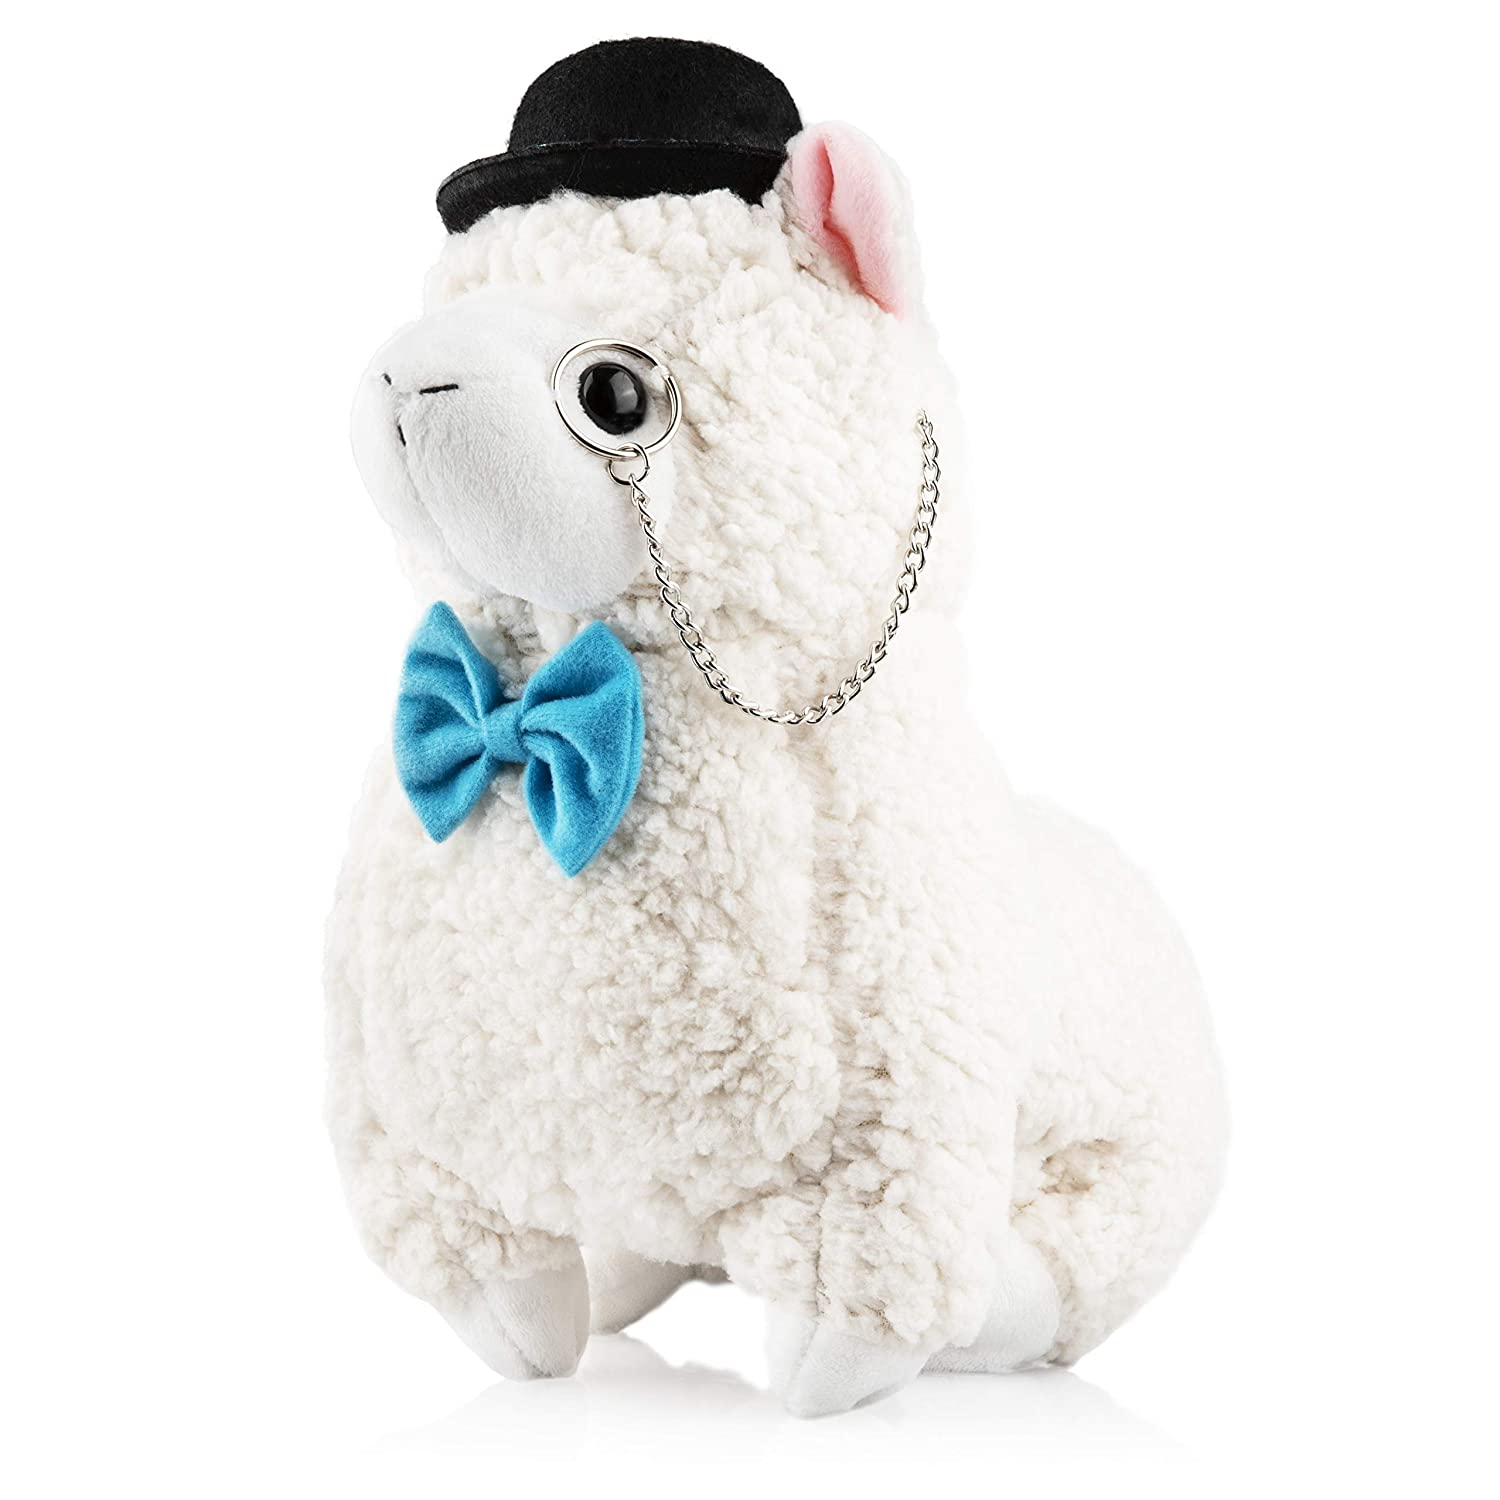 Llama Stuffed Animal Plush Fancy Friend Cute Funny Llama Plush with Monocle Bowtie for Children or Adults Perfect Party Gift or Bedtime Friend for Boys Girls 14 Inches Tall